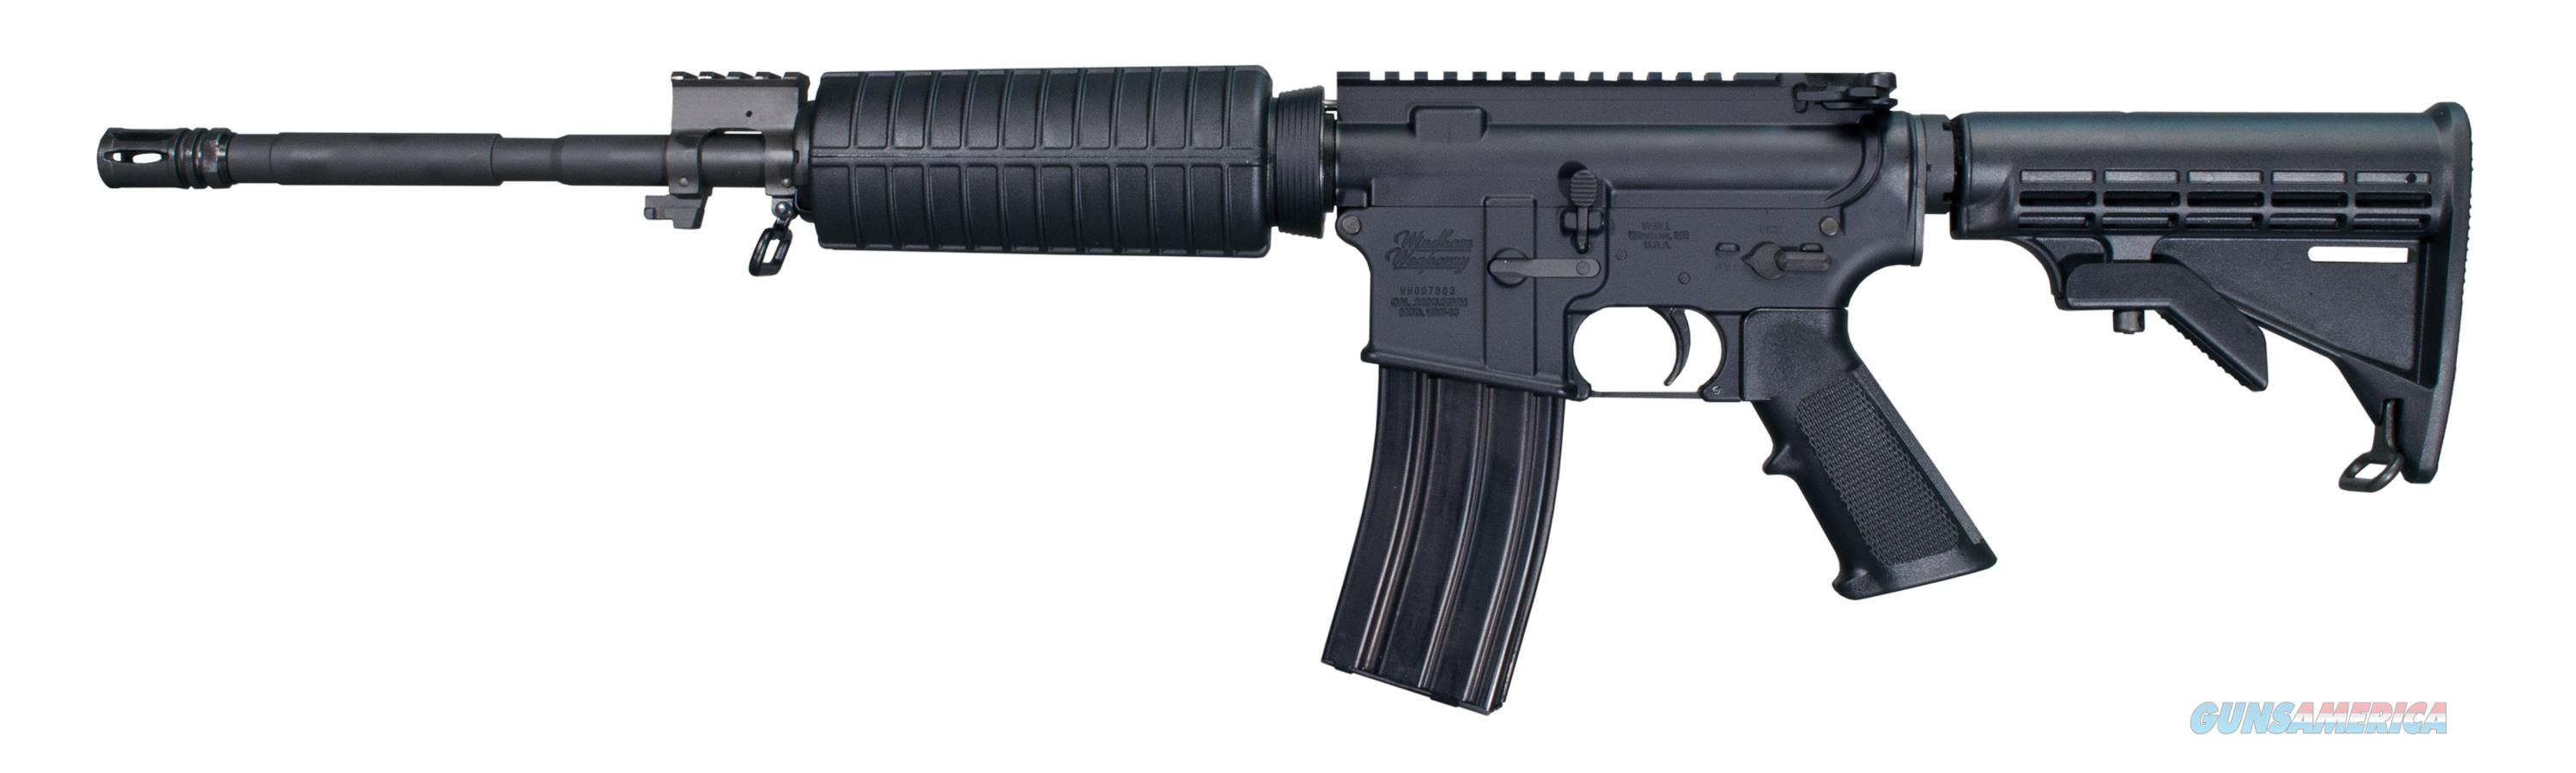 Windham Weaponry SRC M4 .223  Guns > Rifles > Windham Weaponry Rifles